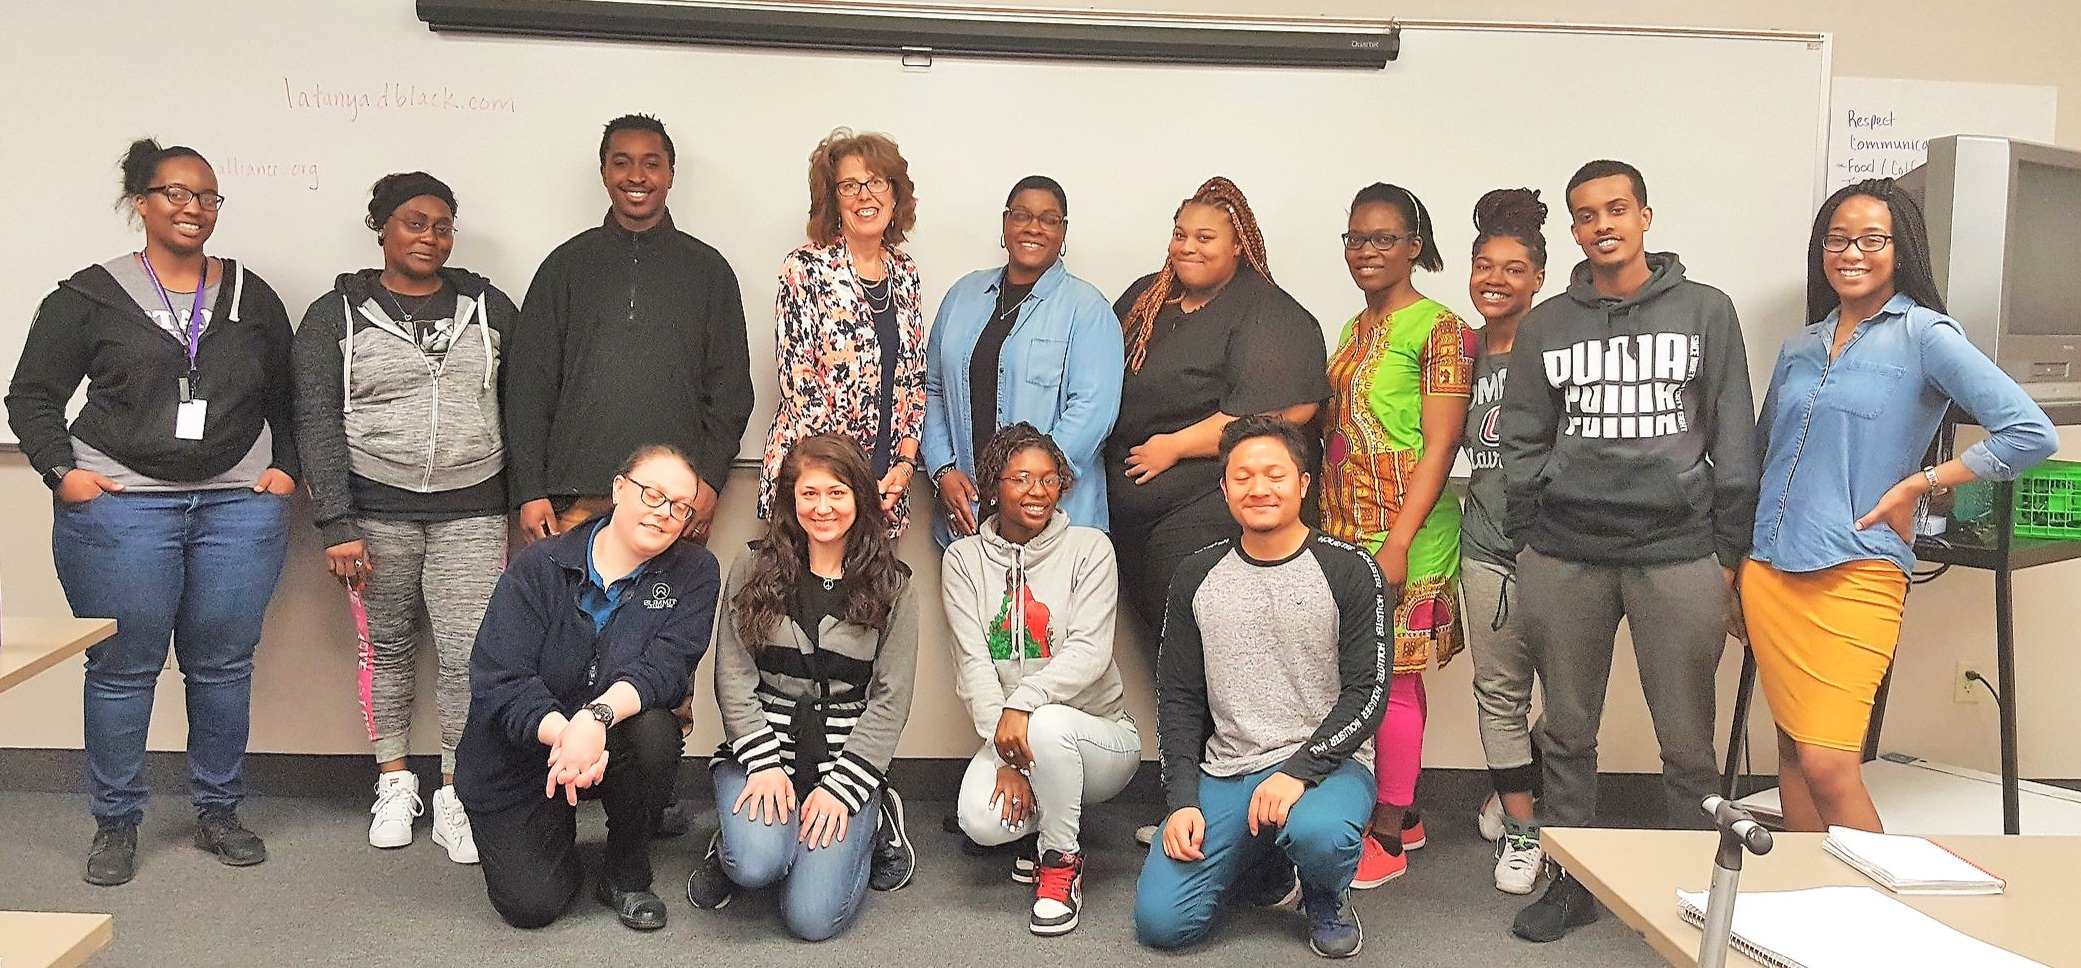 Today the MN Community Health Worker Alliance met with Summit Academy staff and the potential 2019 CHW LBAMS recipients. The students learned about the MNCHWA and LBAMS program offerings. What an exciting day!